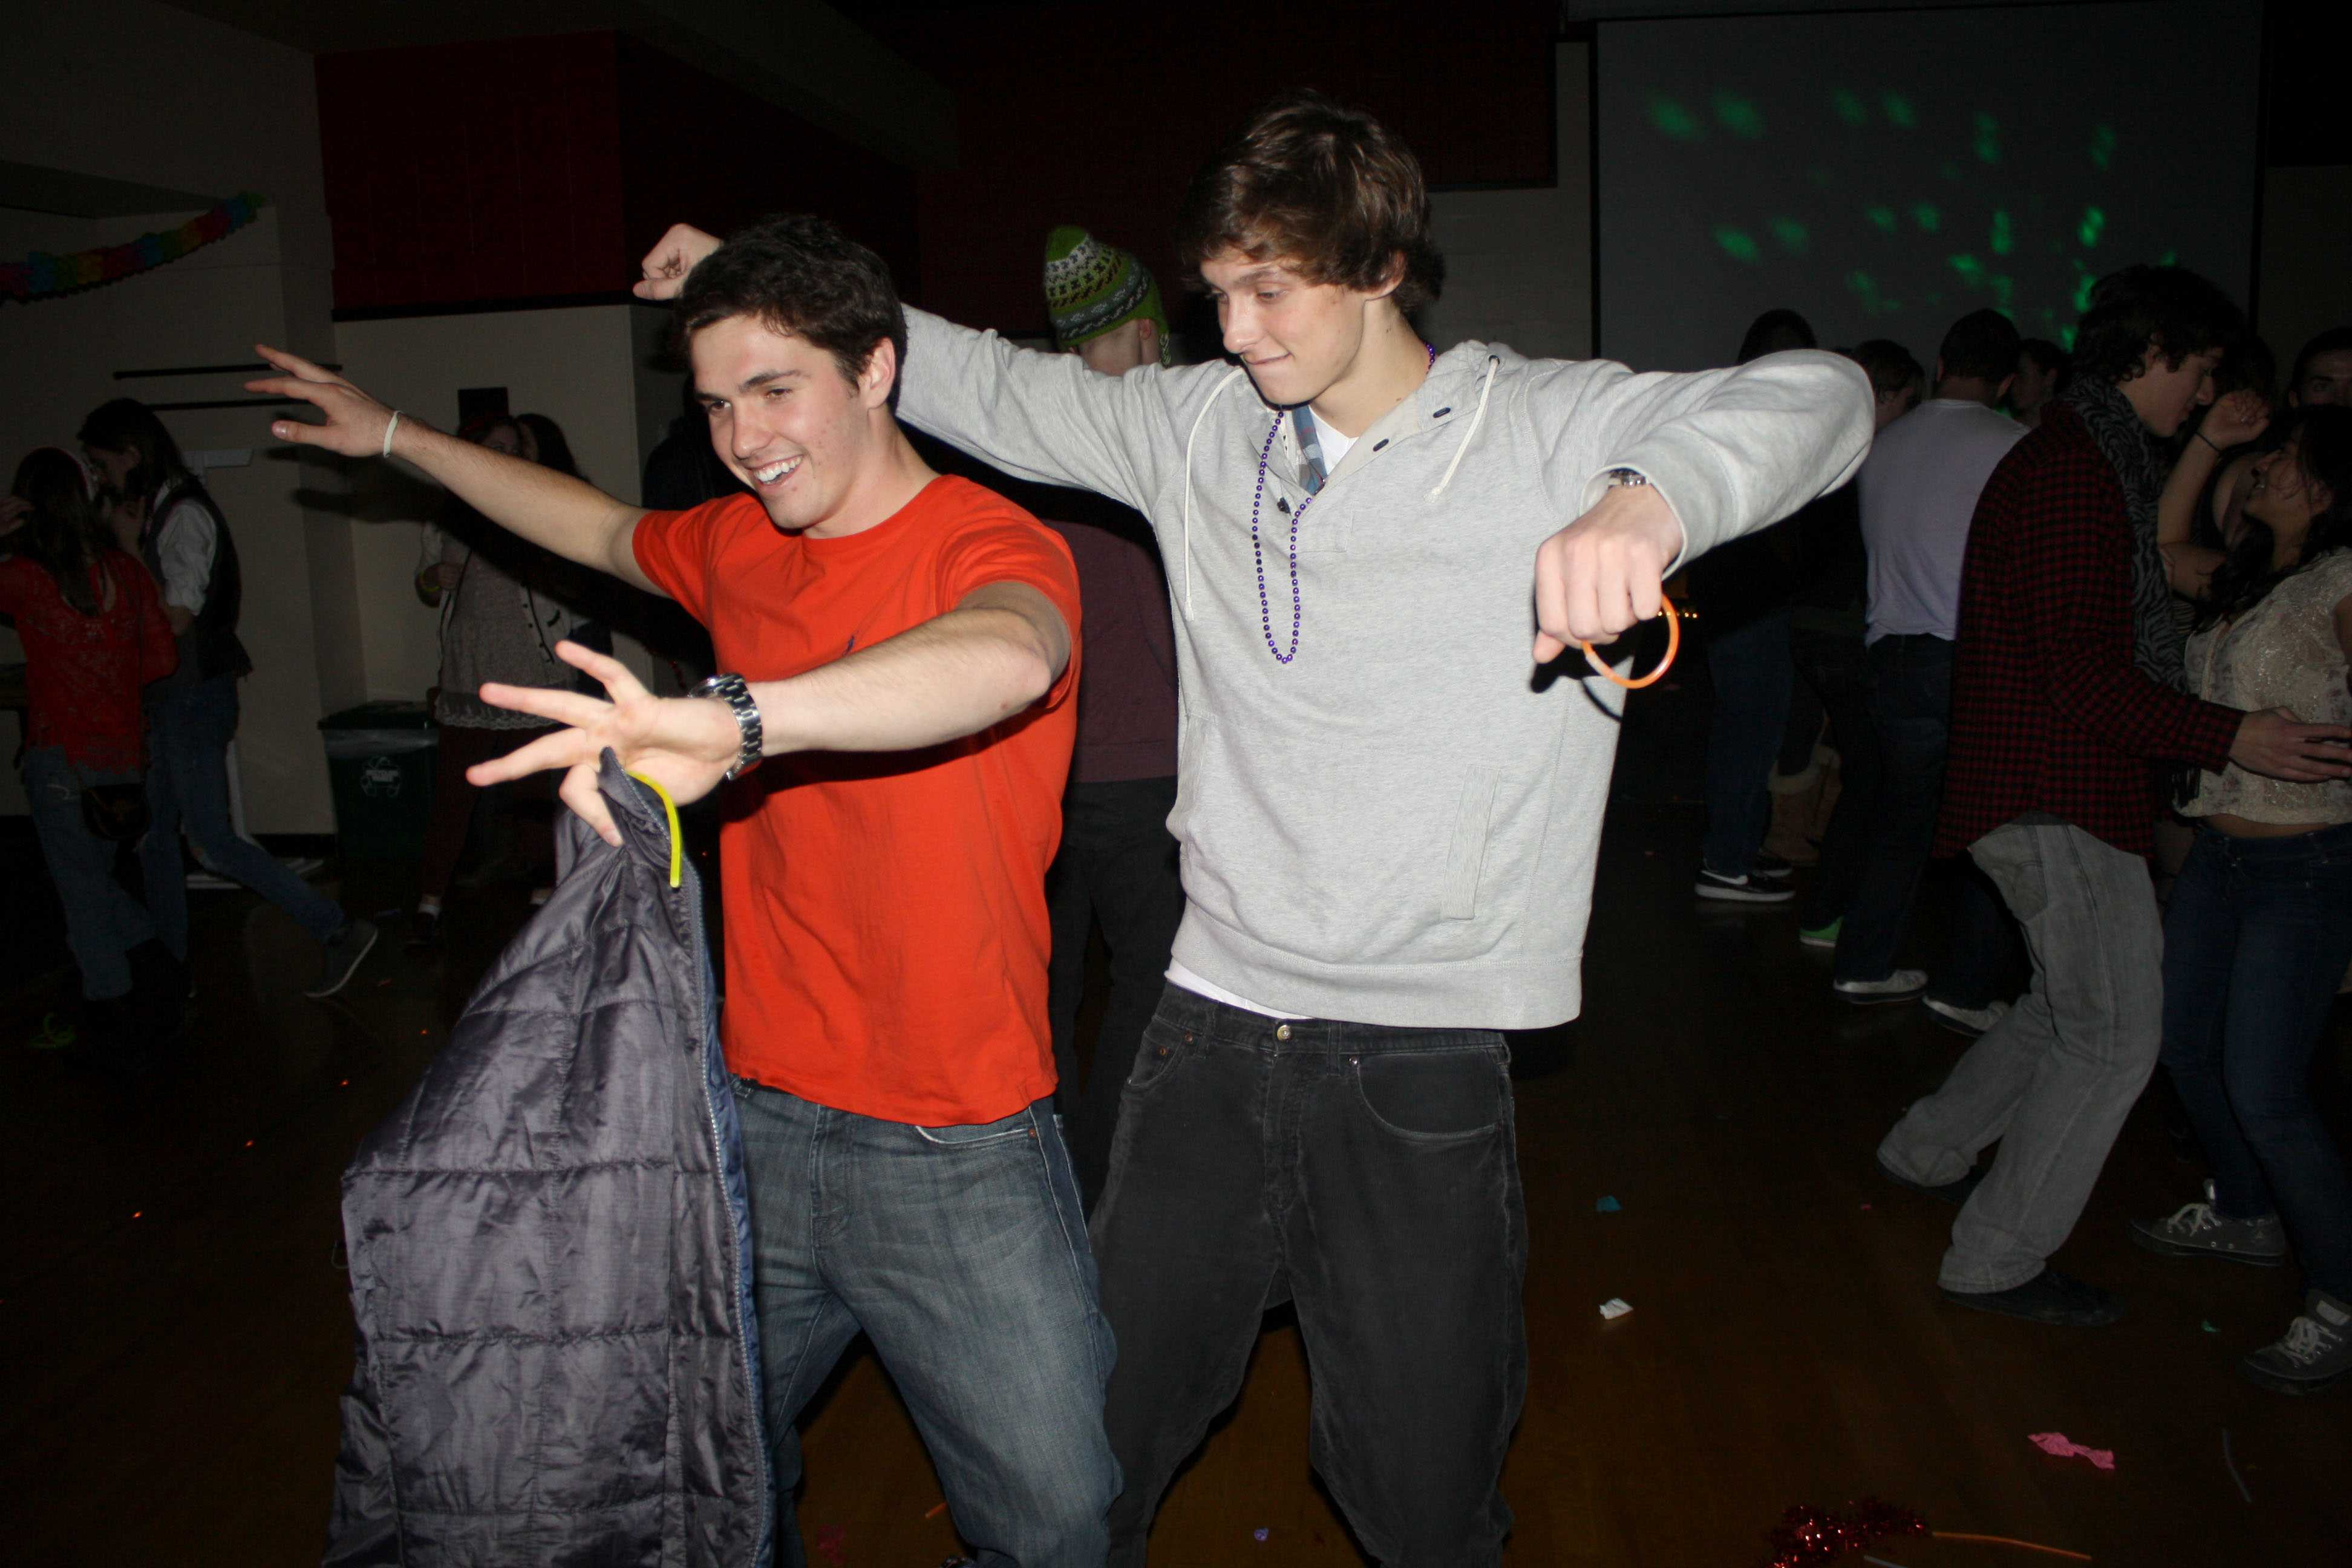 Two students enjoy themselves at the final dance at The Depot, held on Saturday, December 1.